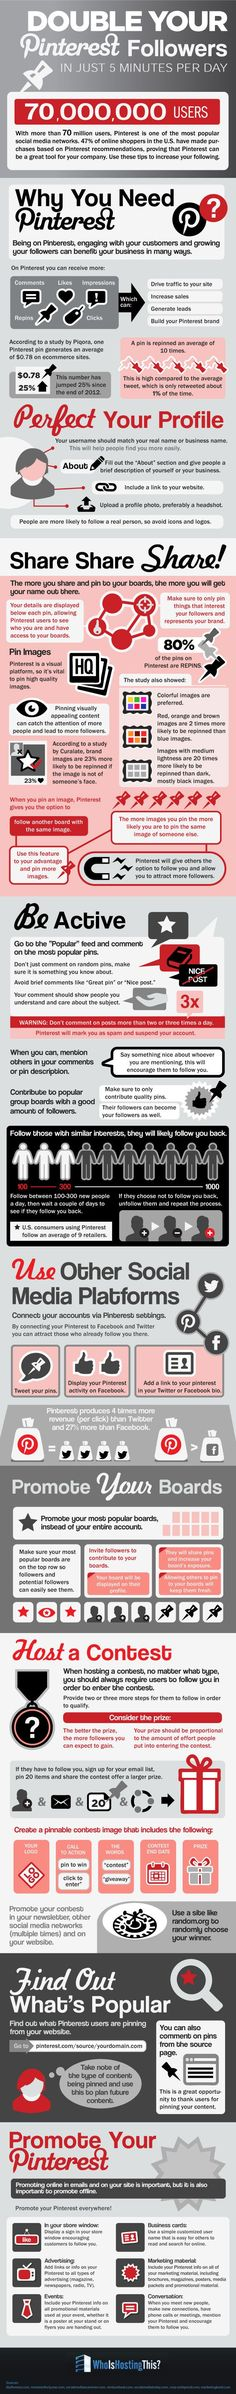 How To Increase Social Media Followers Ethically - 8 infographics | Digital Information World